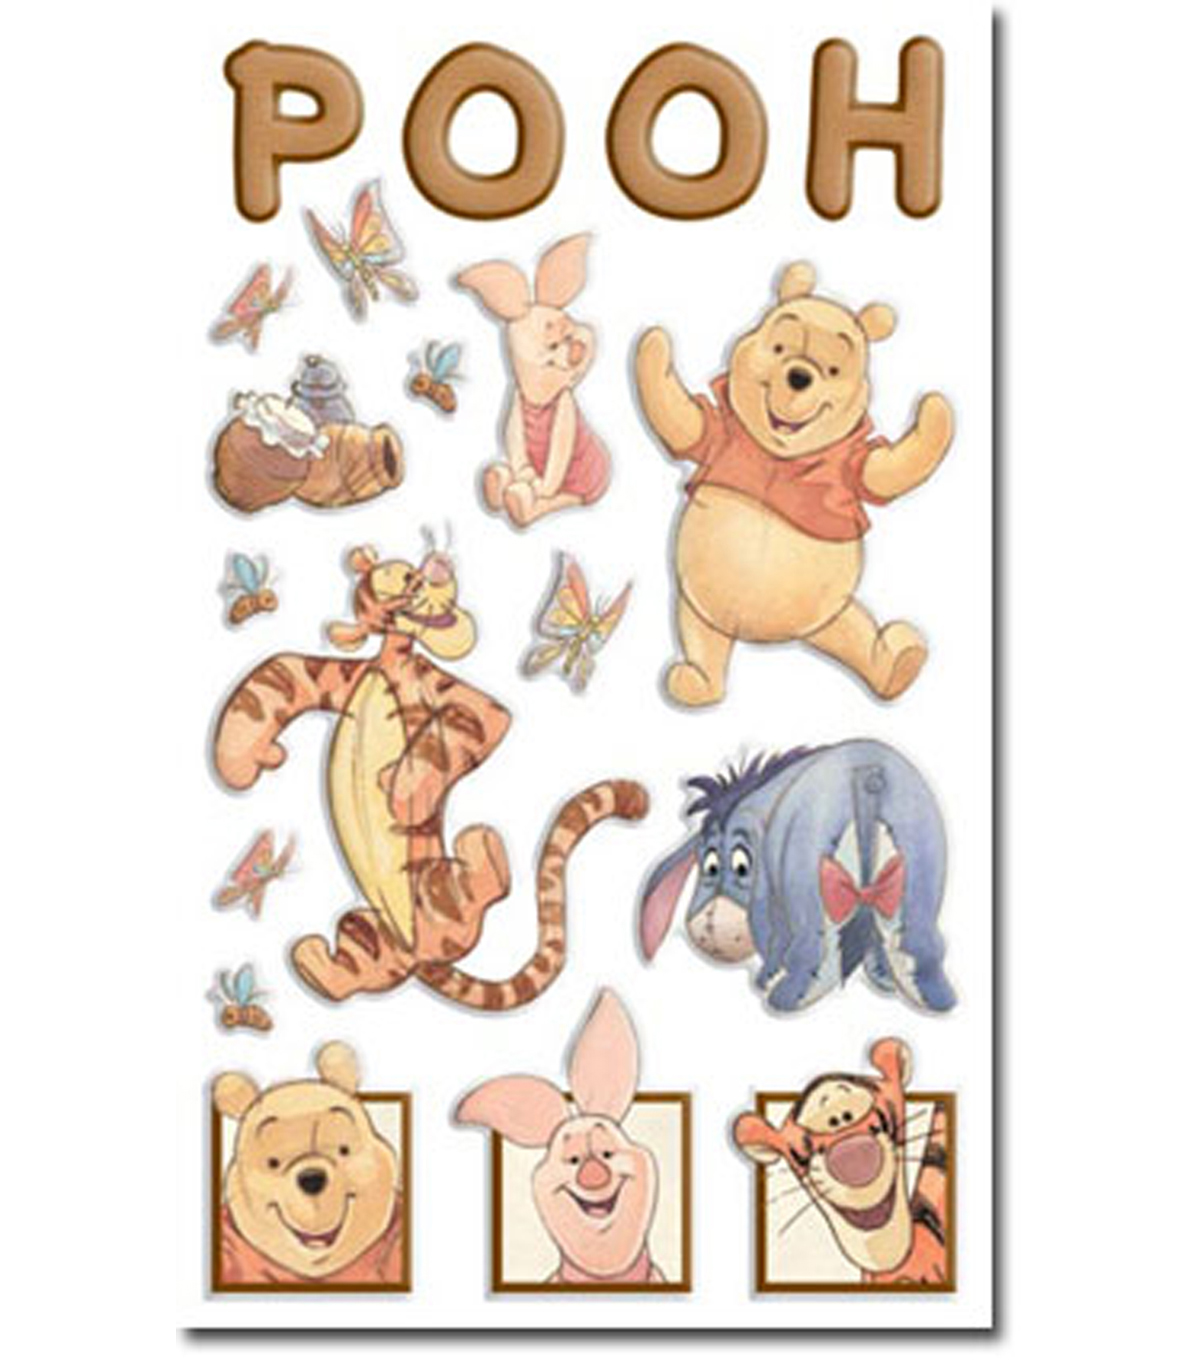 Disney Winnie The Pooh Gems Stickers Packaged-Pooh